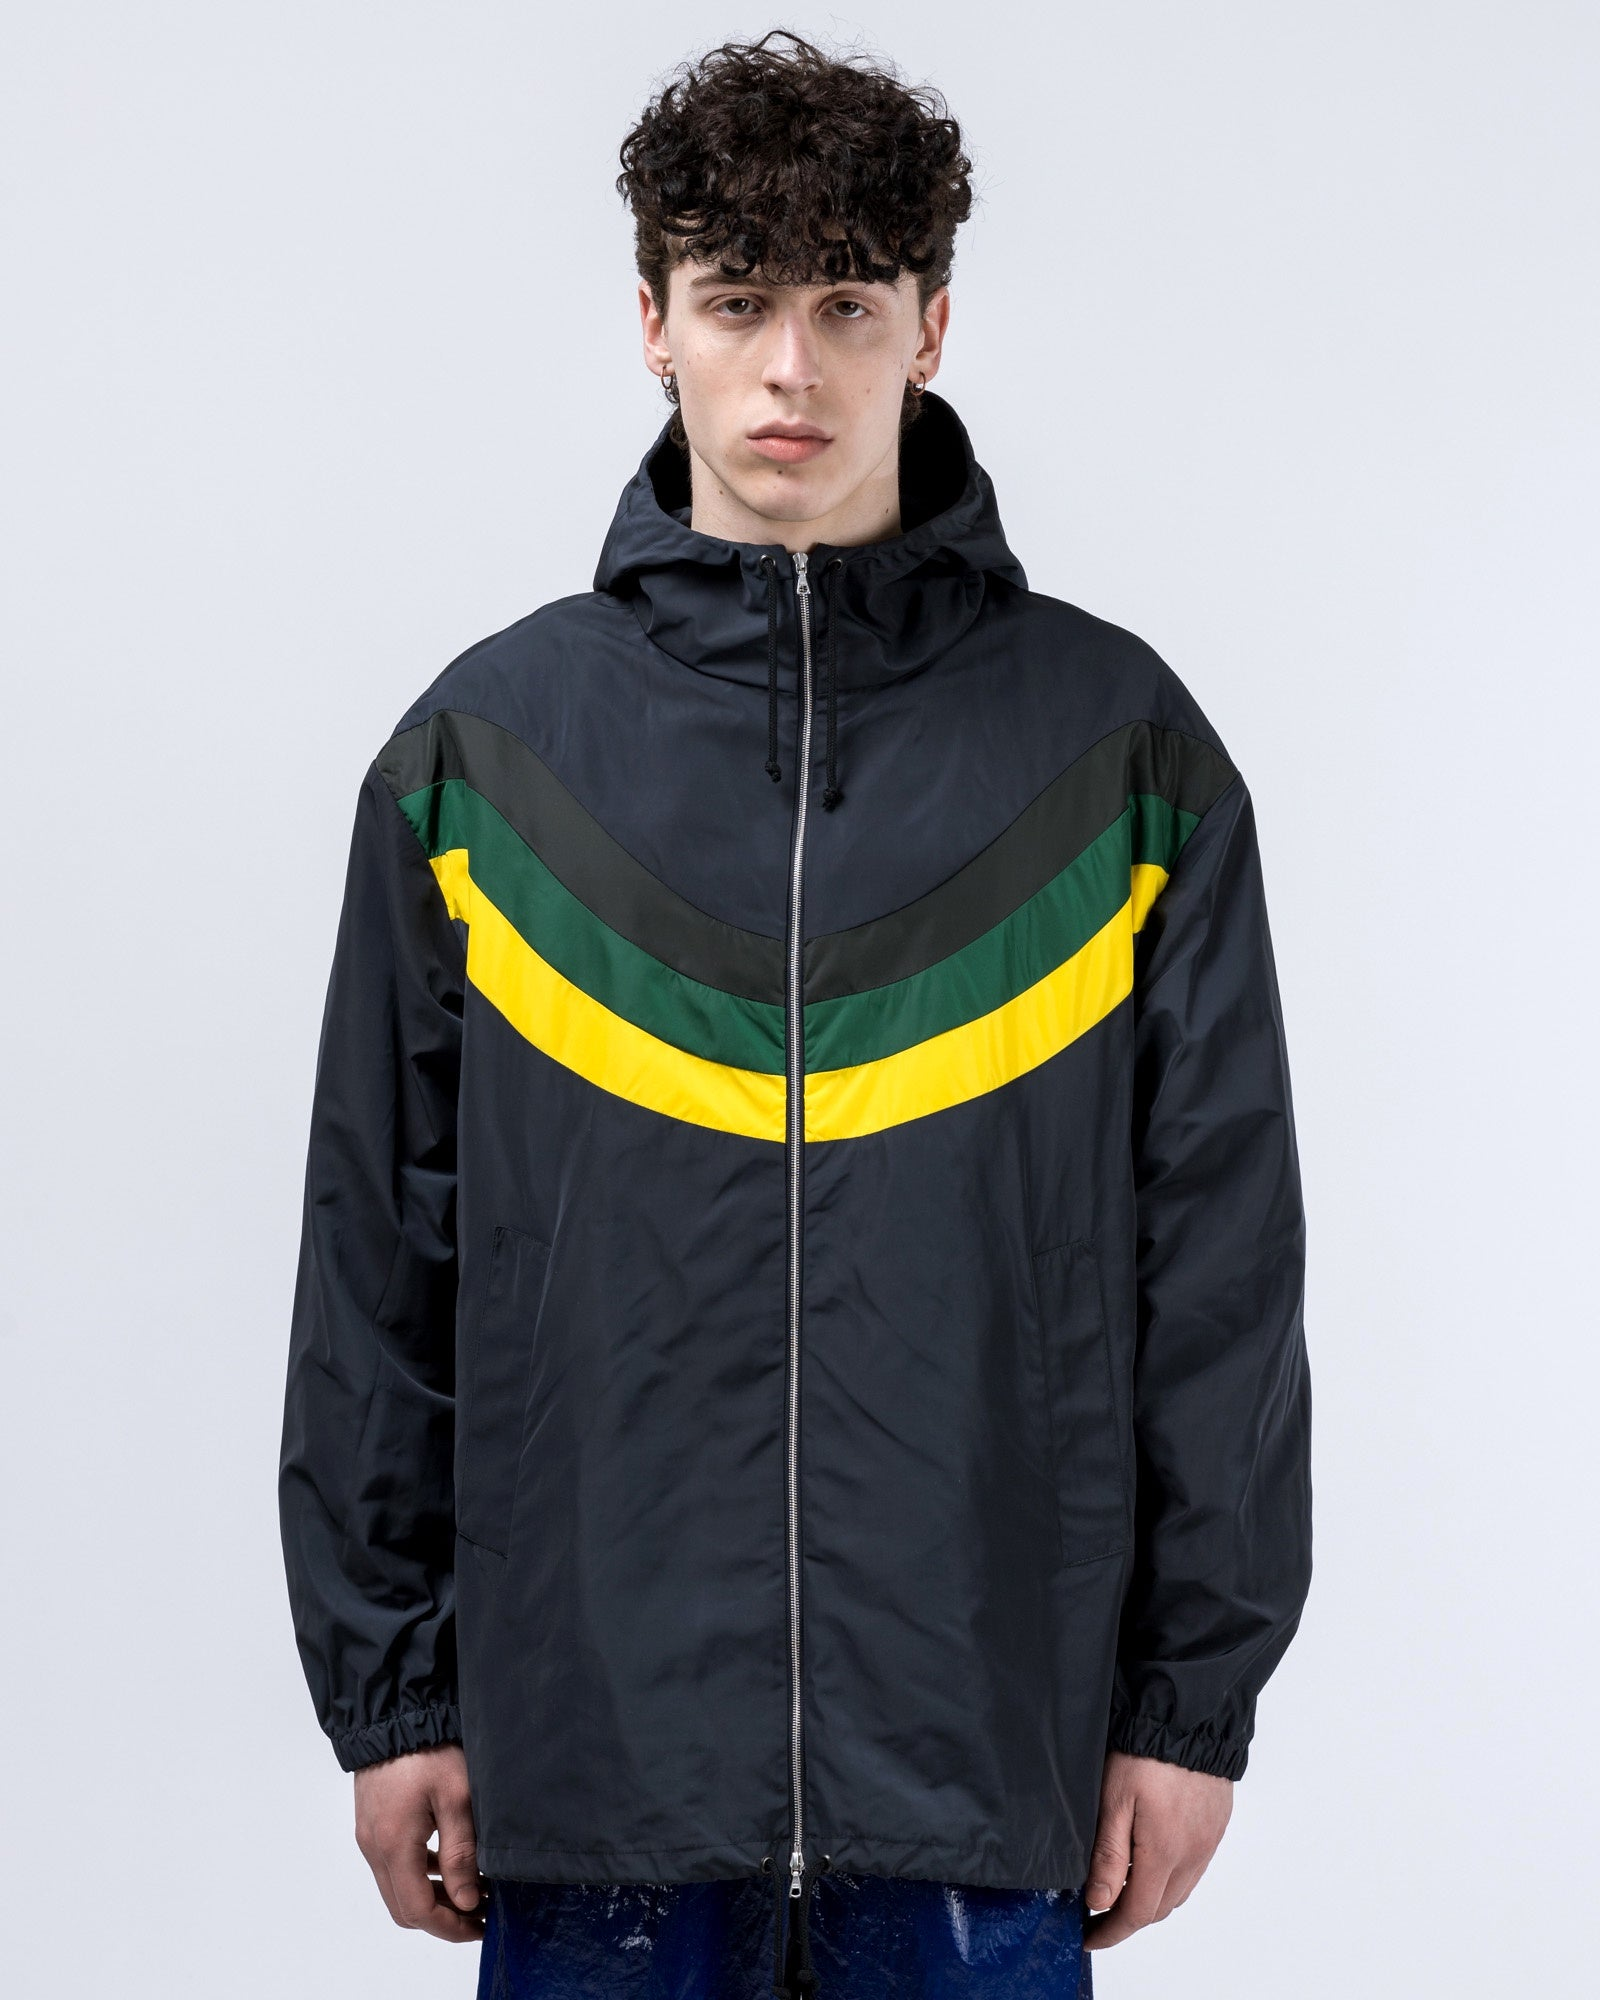 Vence Jacket in Navy / Yellow